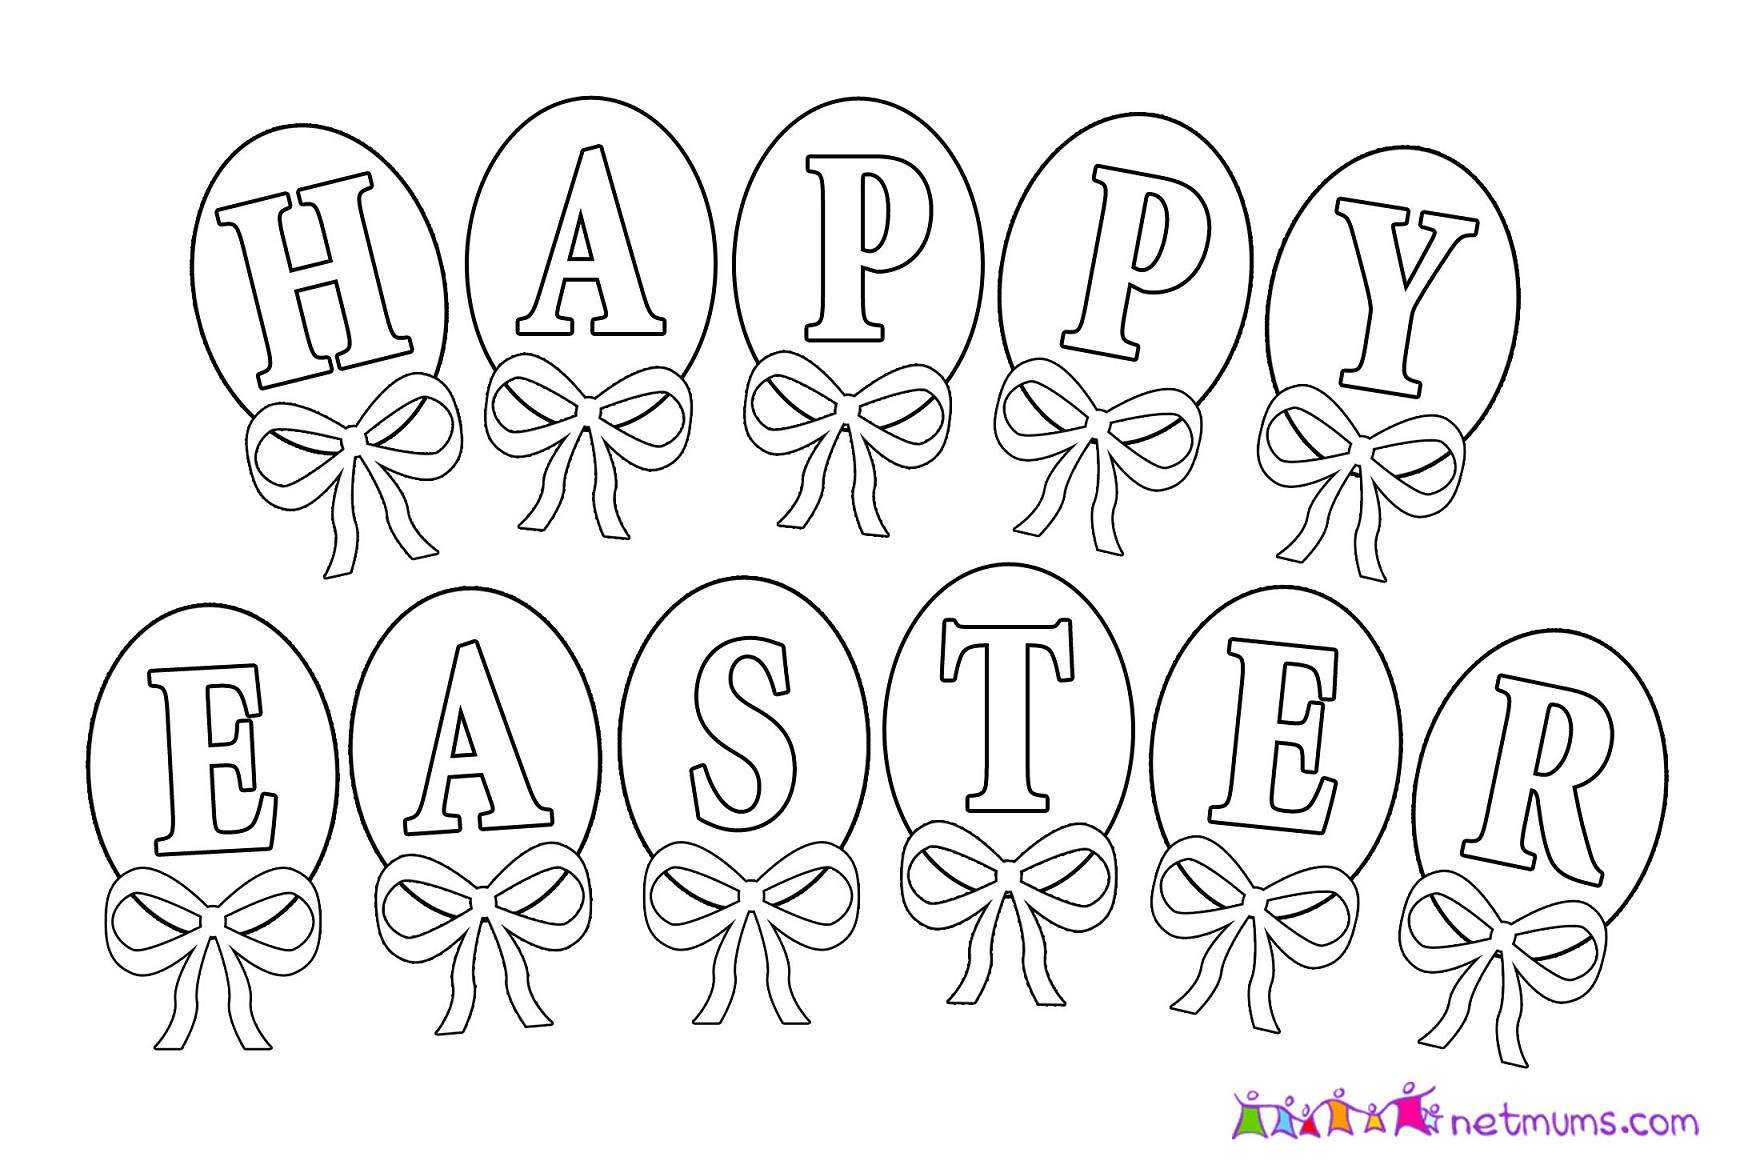 Happy Easter Drawing at GetDrawings.com | Free for personal use ...